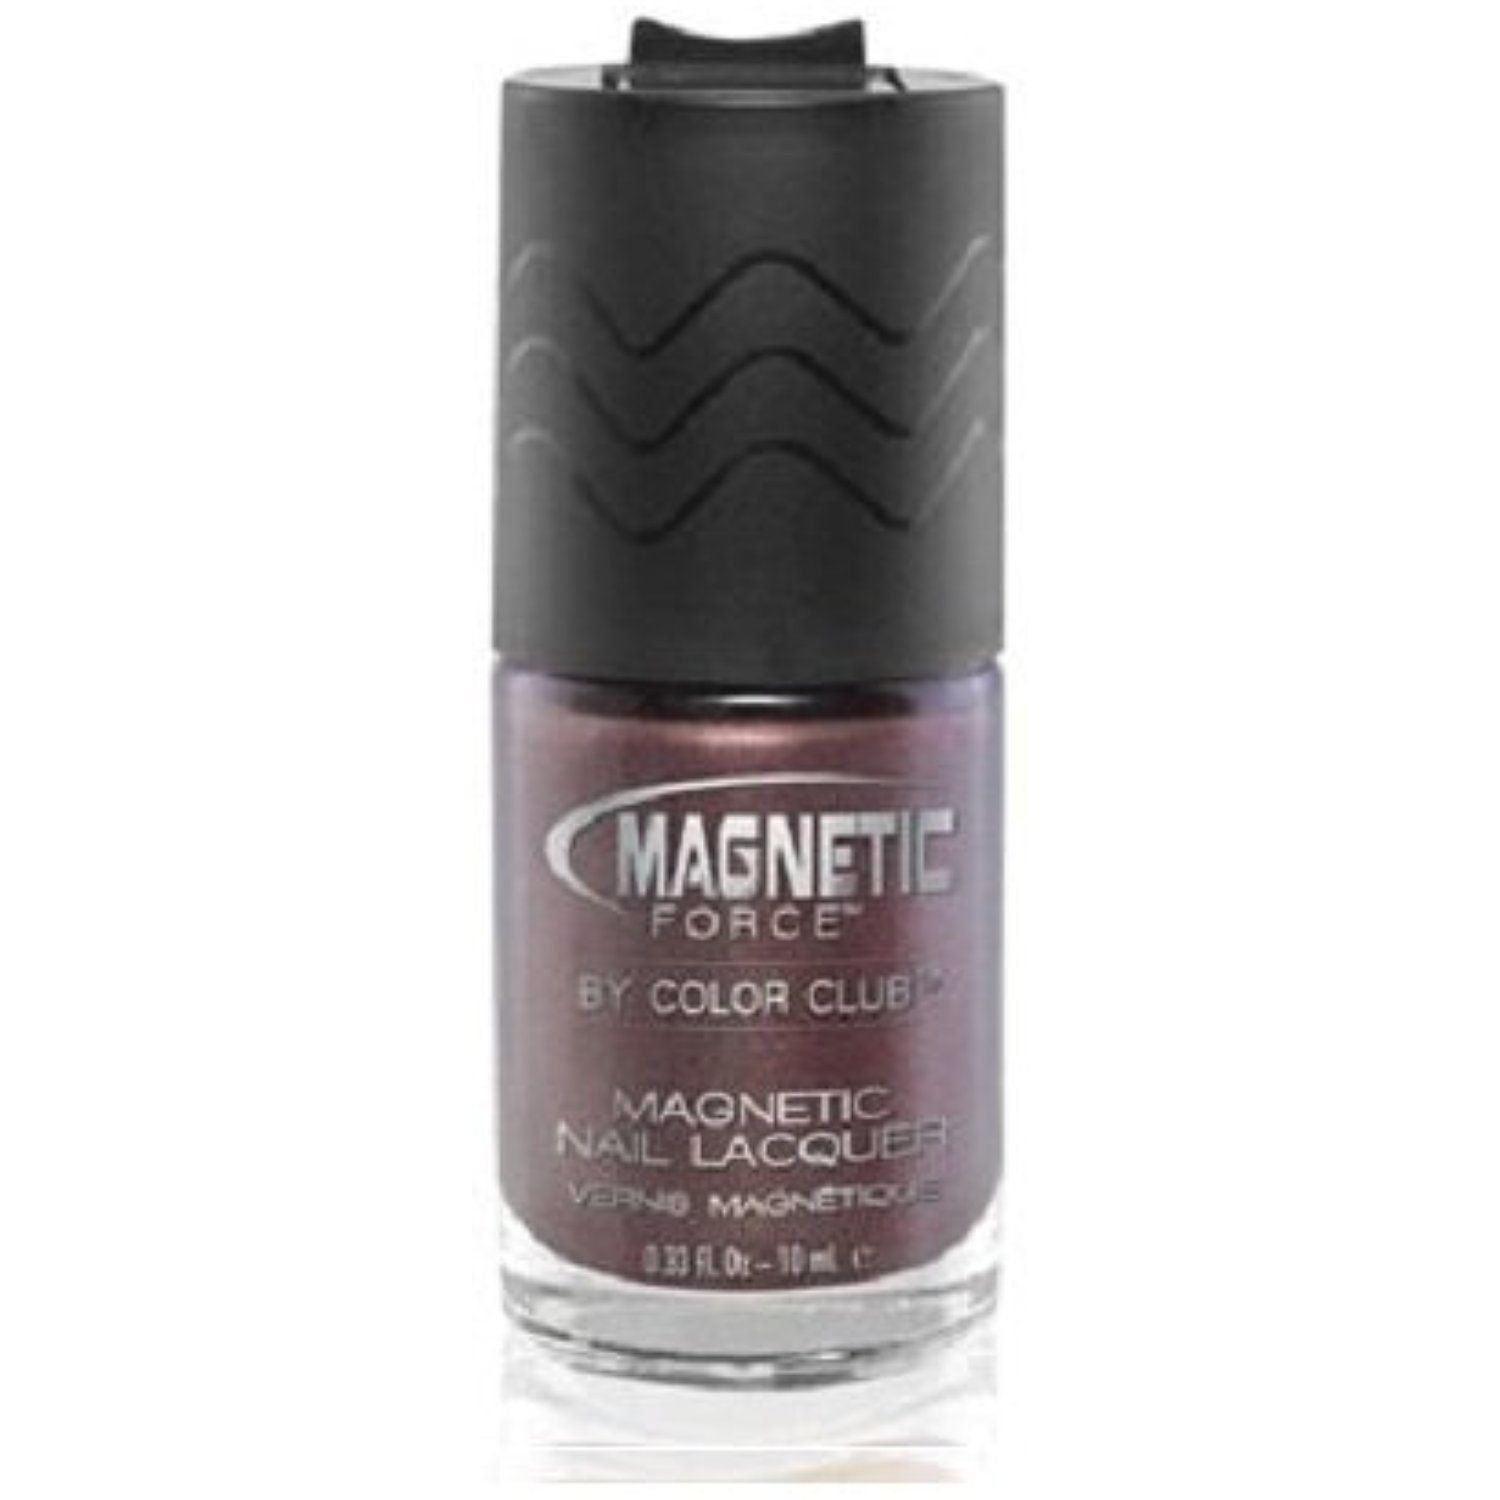 Magnetic Force Magnetic Nail Lacquer - Magnetic Force AMF01 0.33 Oz ...